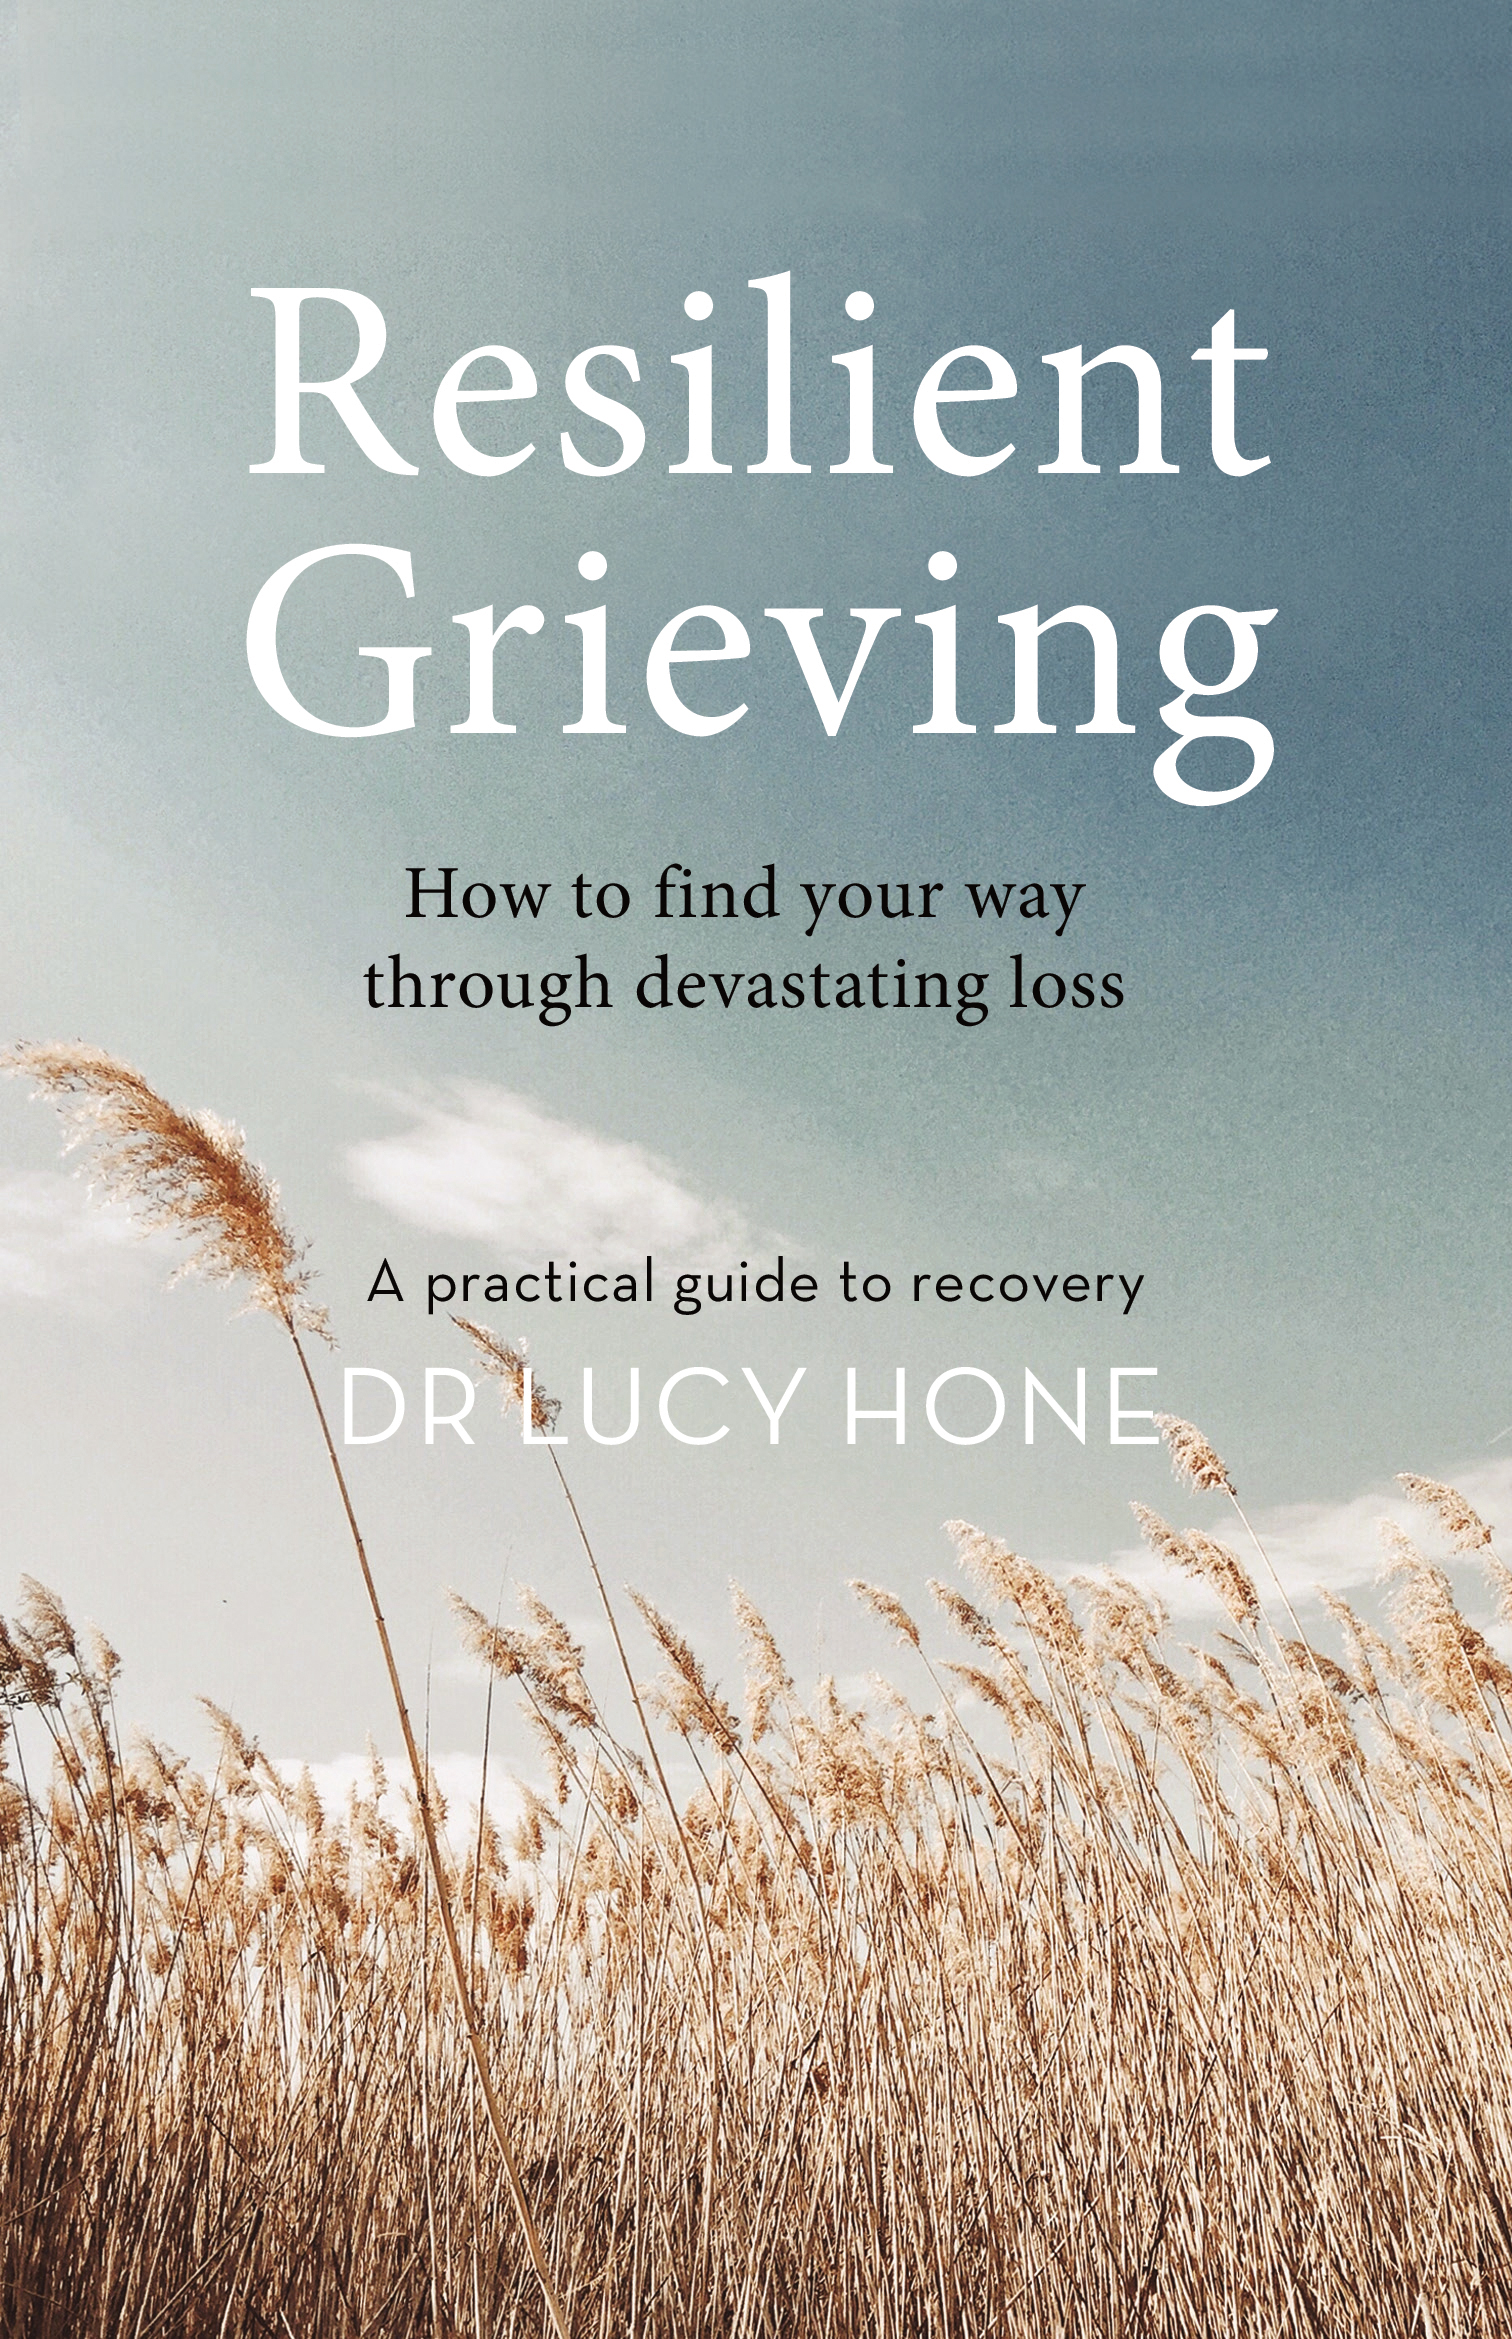 bereavement grief and resilience Clinical advice regarding managing grief after a disaster, including addressing traumatic grief, complications of bereavement, and risk factors.